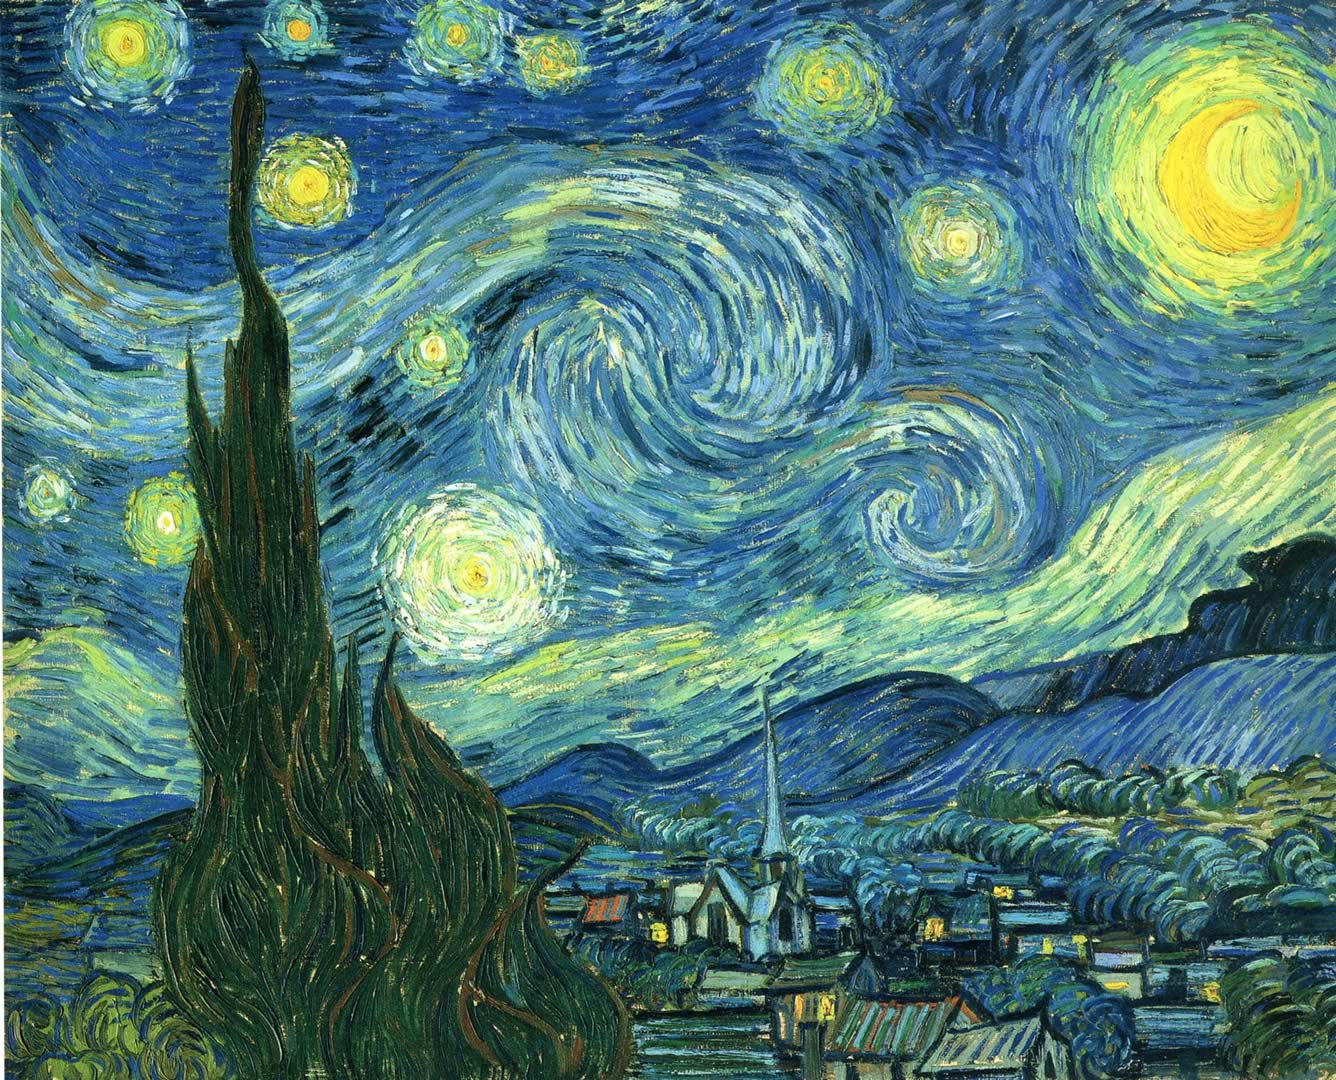 The Starry Night Wallpaper Image Featuring Vincent Van Gogh